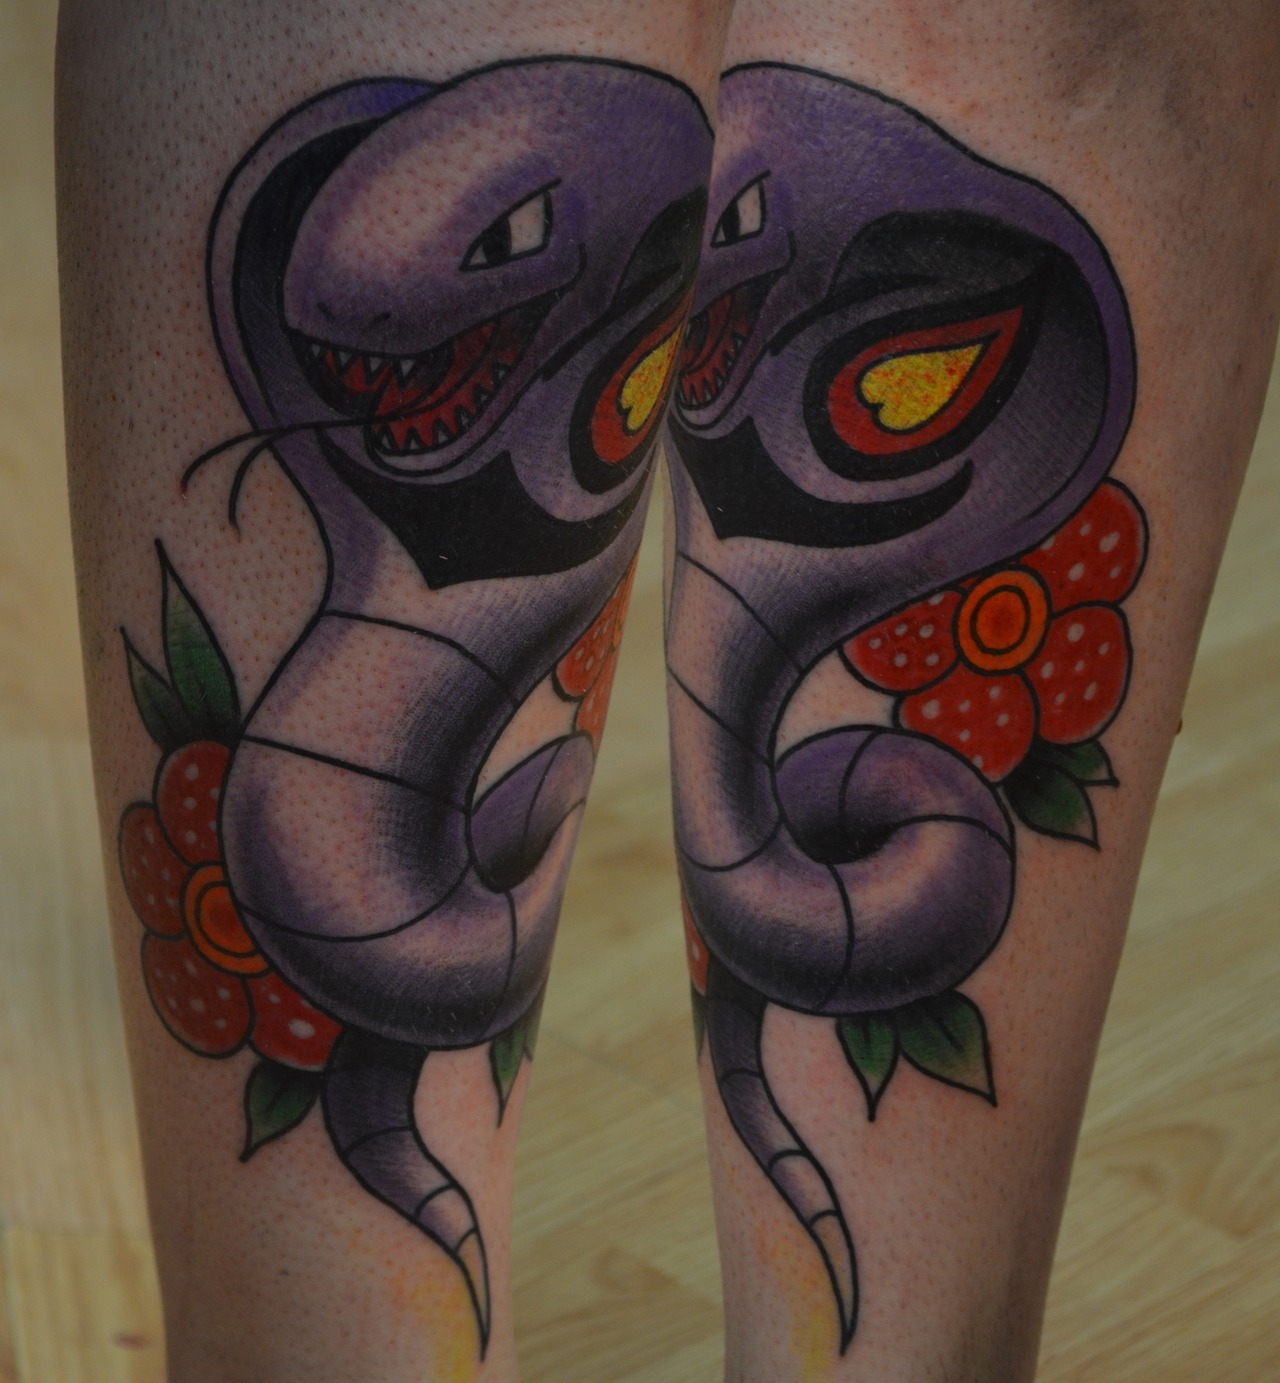 fuckyeahtattoos:  Free-hand traditional styled Arbok with Vileplume flowers on Fern from Before Their Eyes.http://johnembrytattoos.tumblr.com  http://www.facebook.com/pages/Studio-14-Tattoos-and-Body-Piercings/131300733088